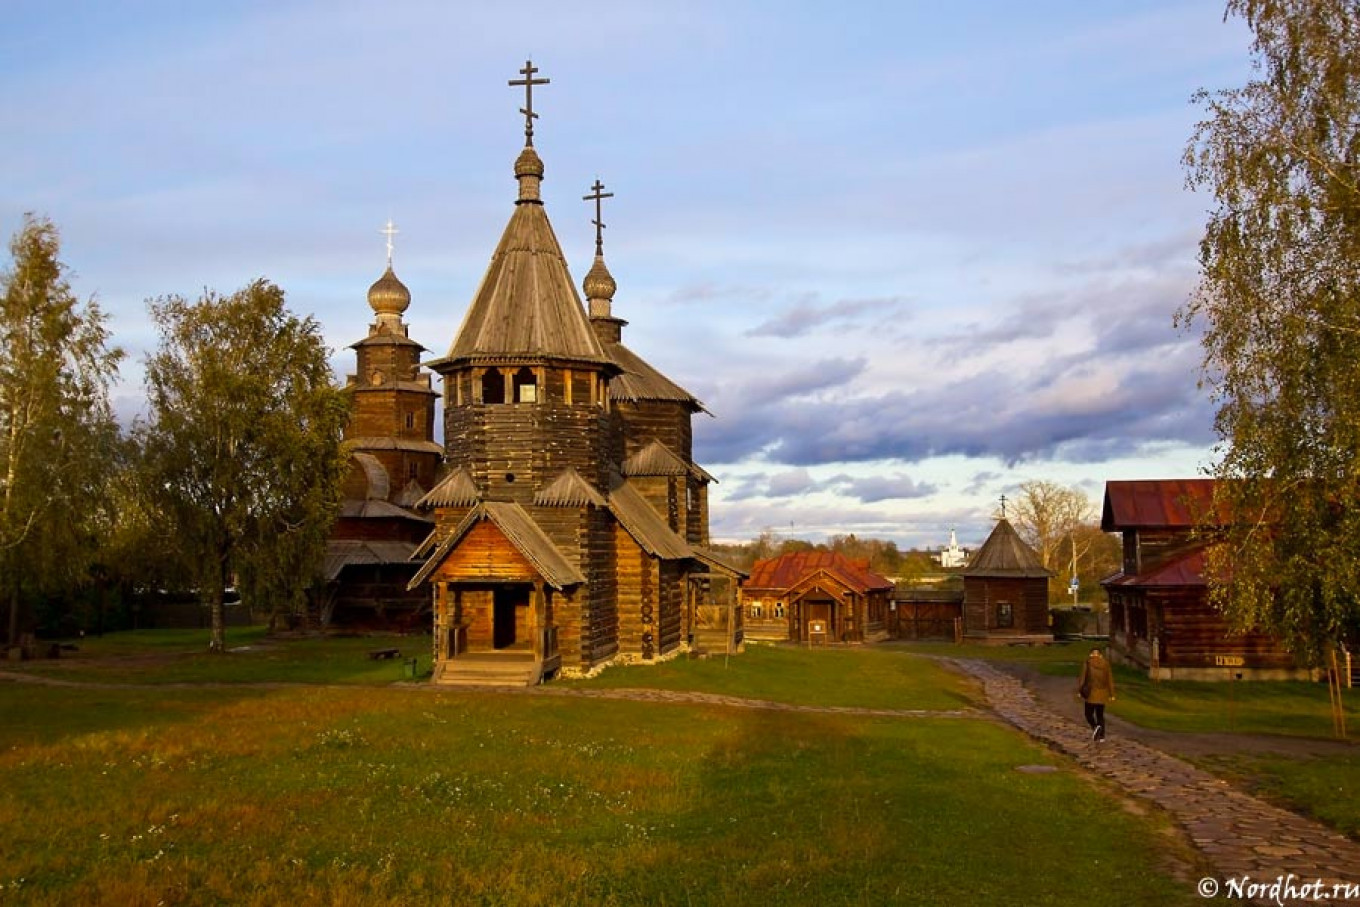 The Museum of Wooden Architecture is one of Suzdal's chief attractions. NORDHOT.RU